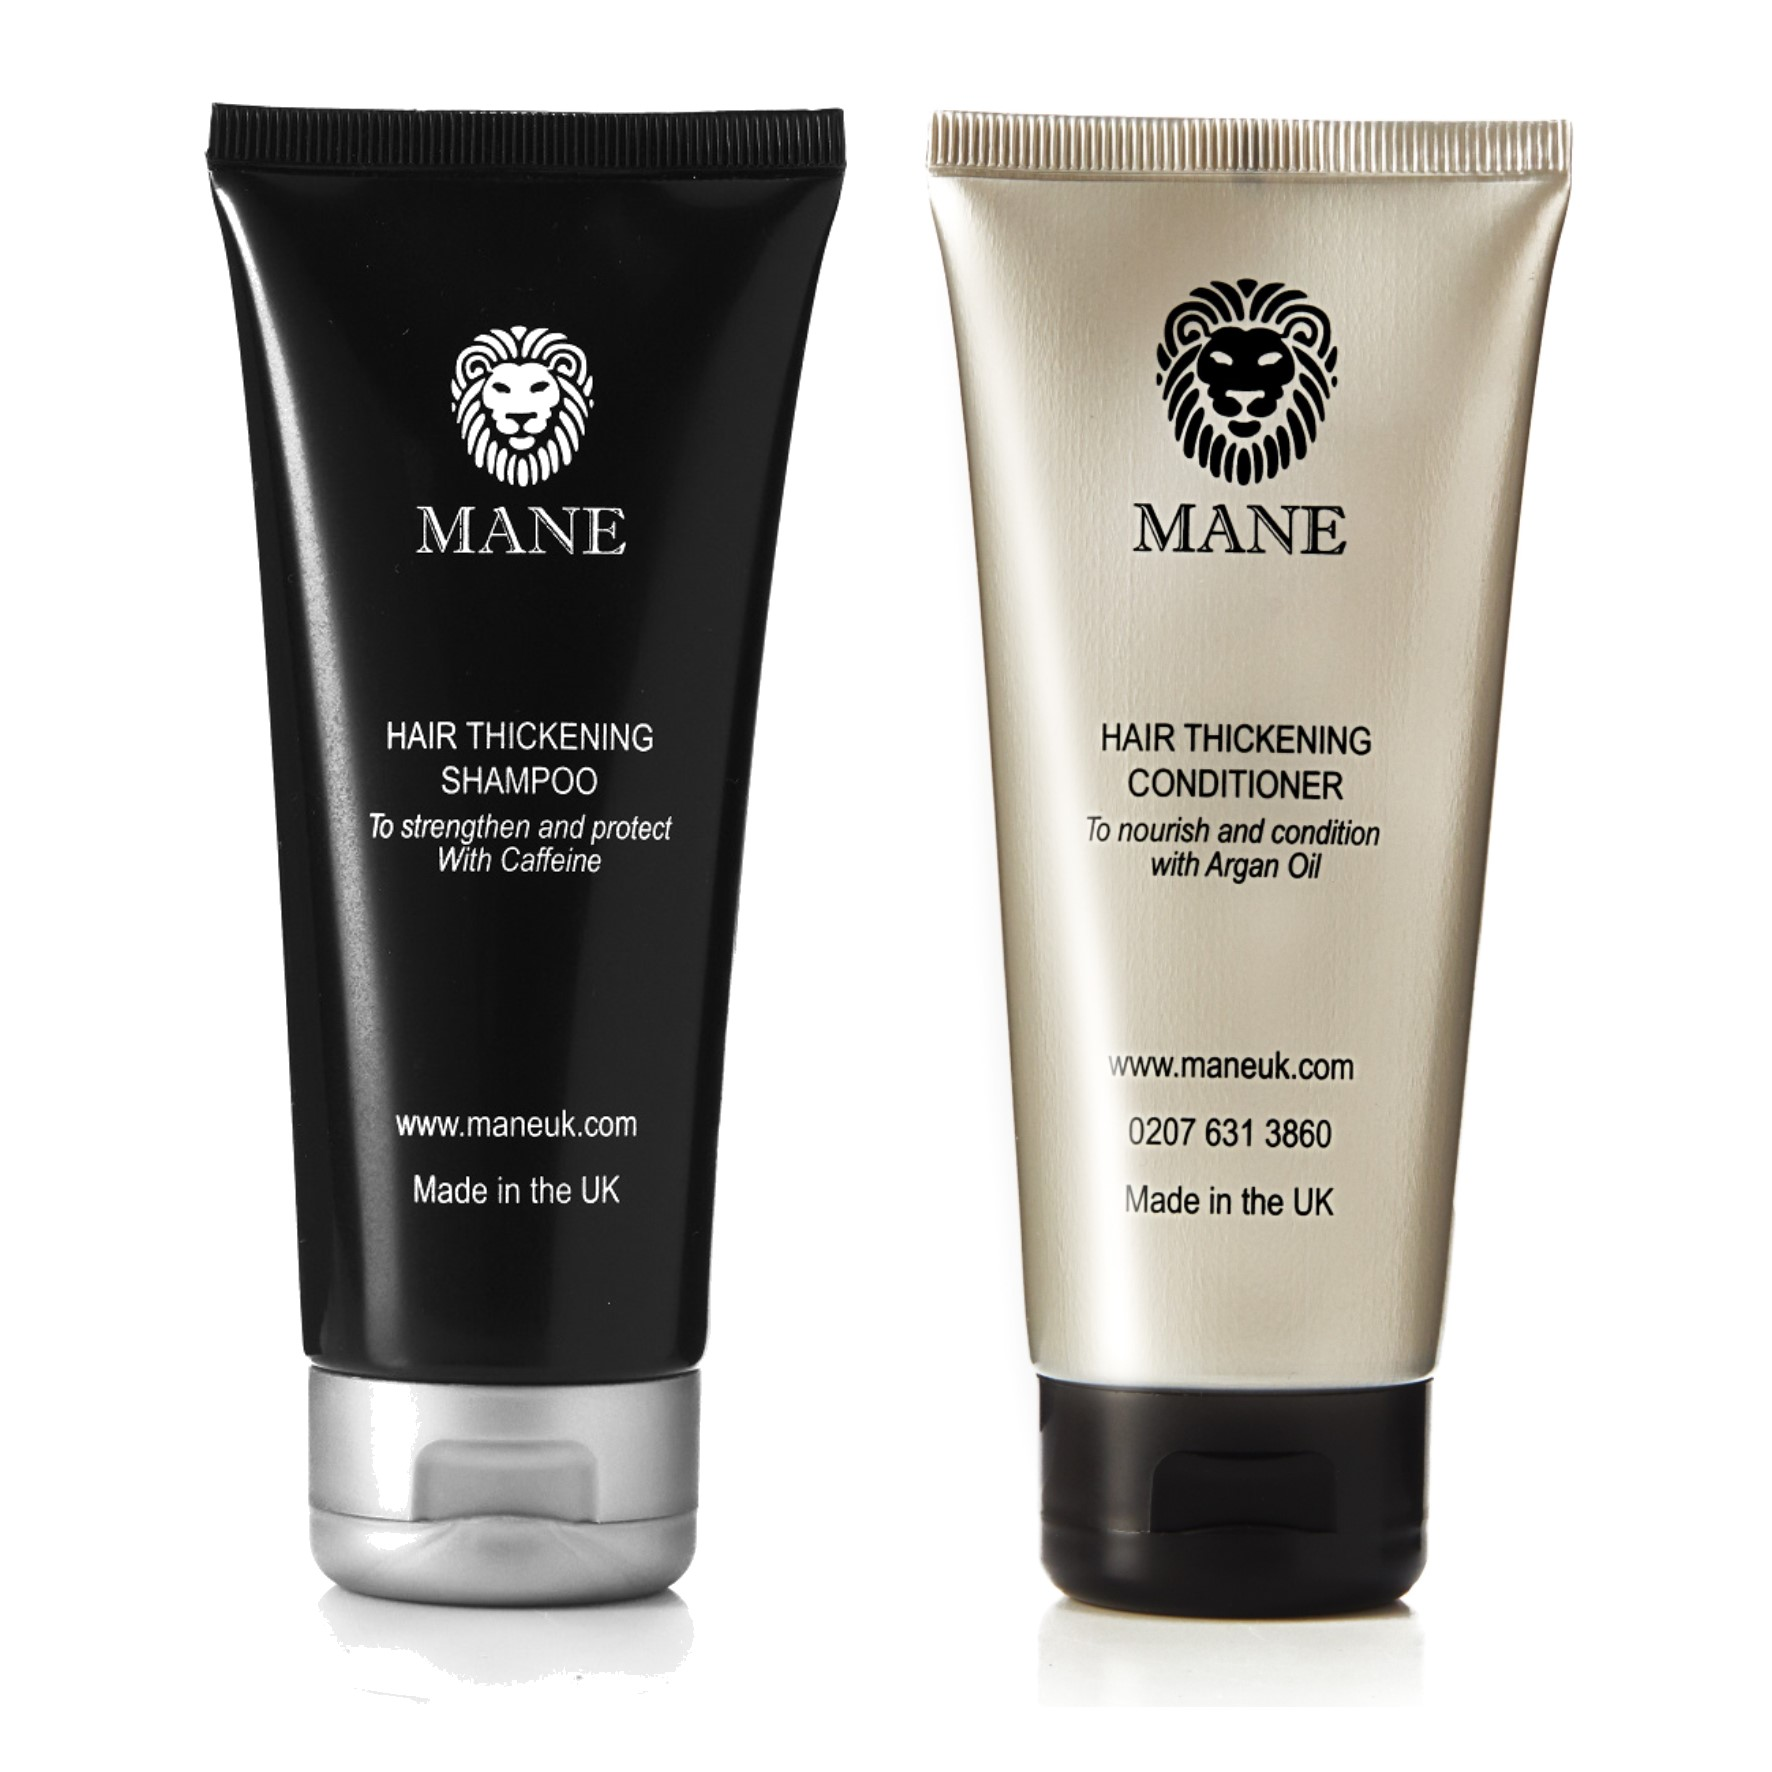 mane hair thickening shampoo and conditioner